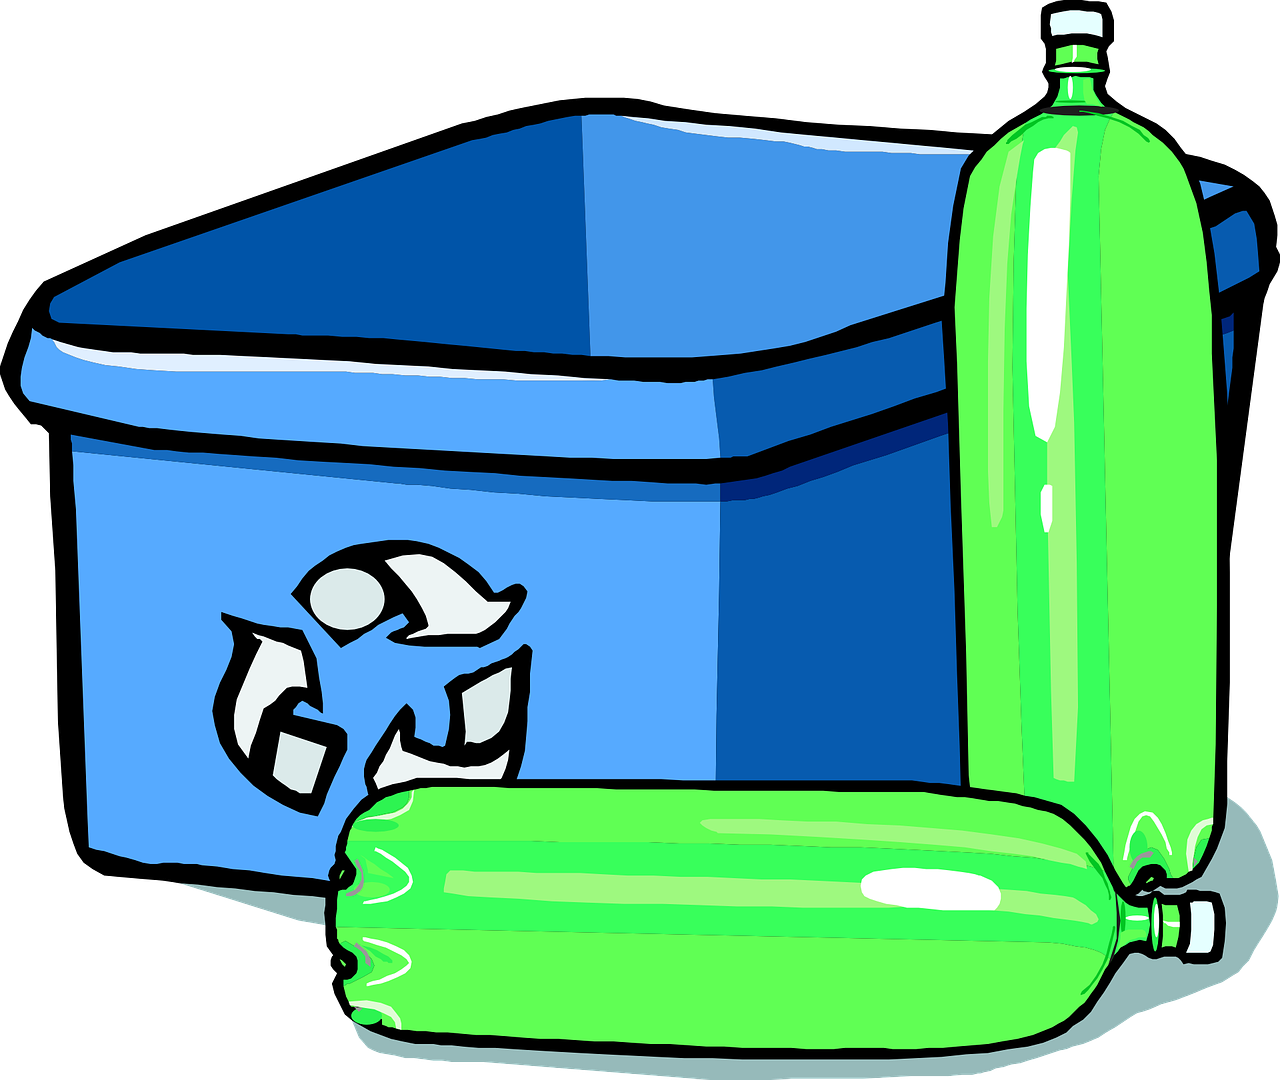 Garbage clipart recycling glass. The eco friendly dog